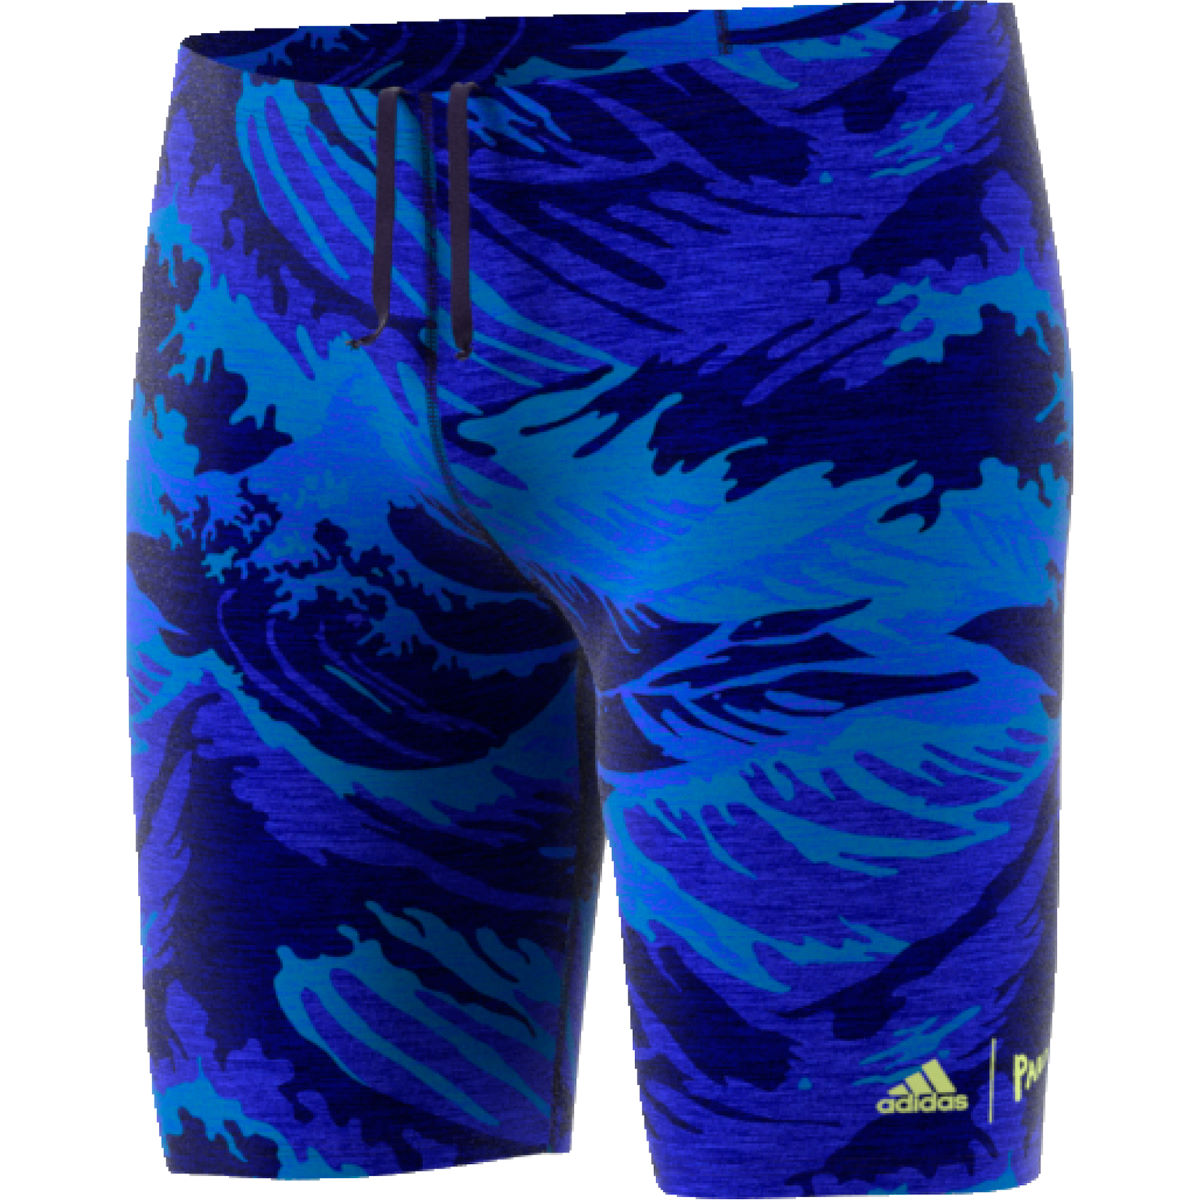 Jammer adidas Parley Fitness - 34'' Ink/Semi Frozen yell